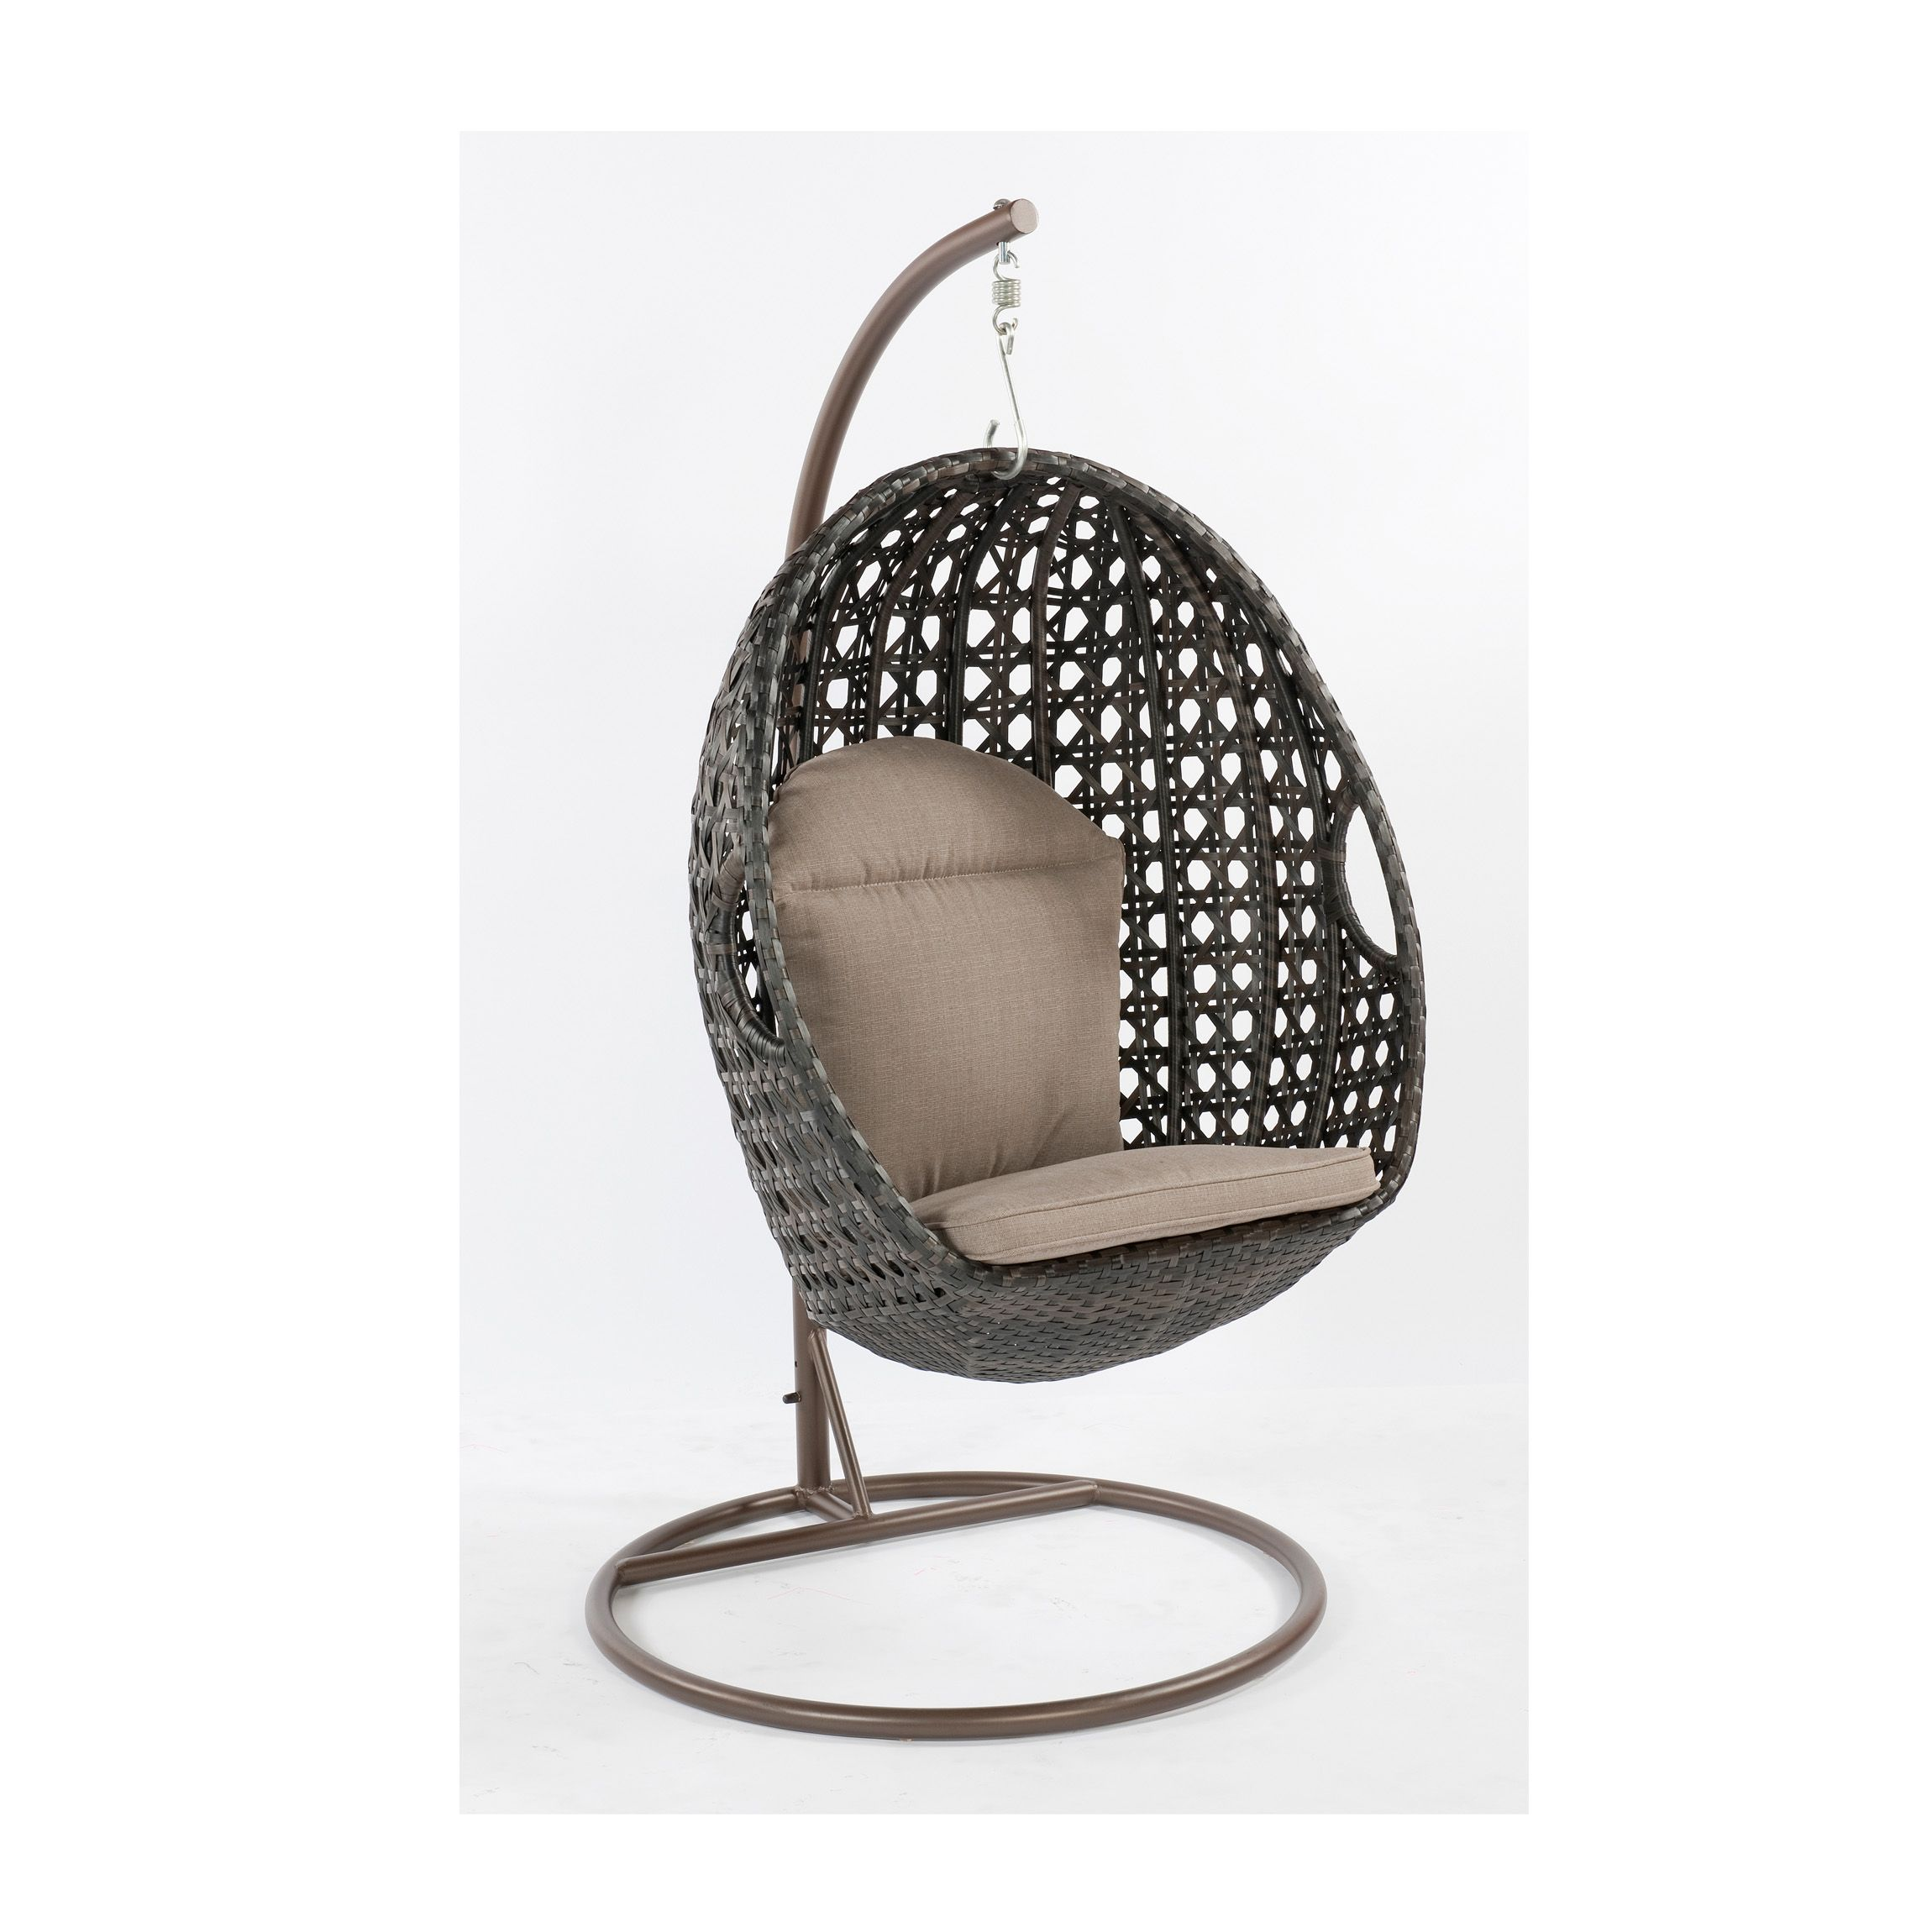 Outdoor Swing Chair Bunnings Pottery Barn Nursery Reviews Mimosa Resin Wicker Hanging Egg Warehouse For The